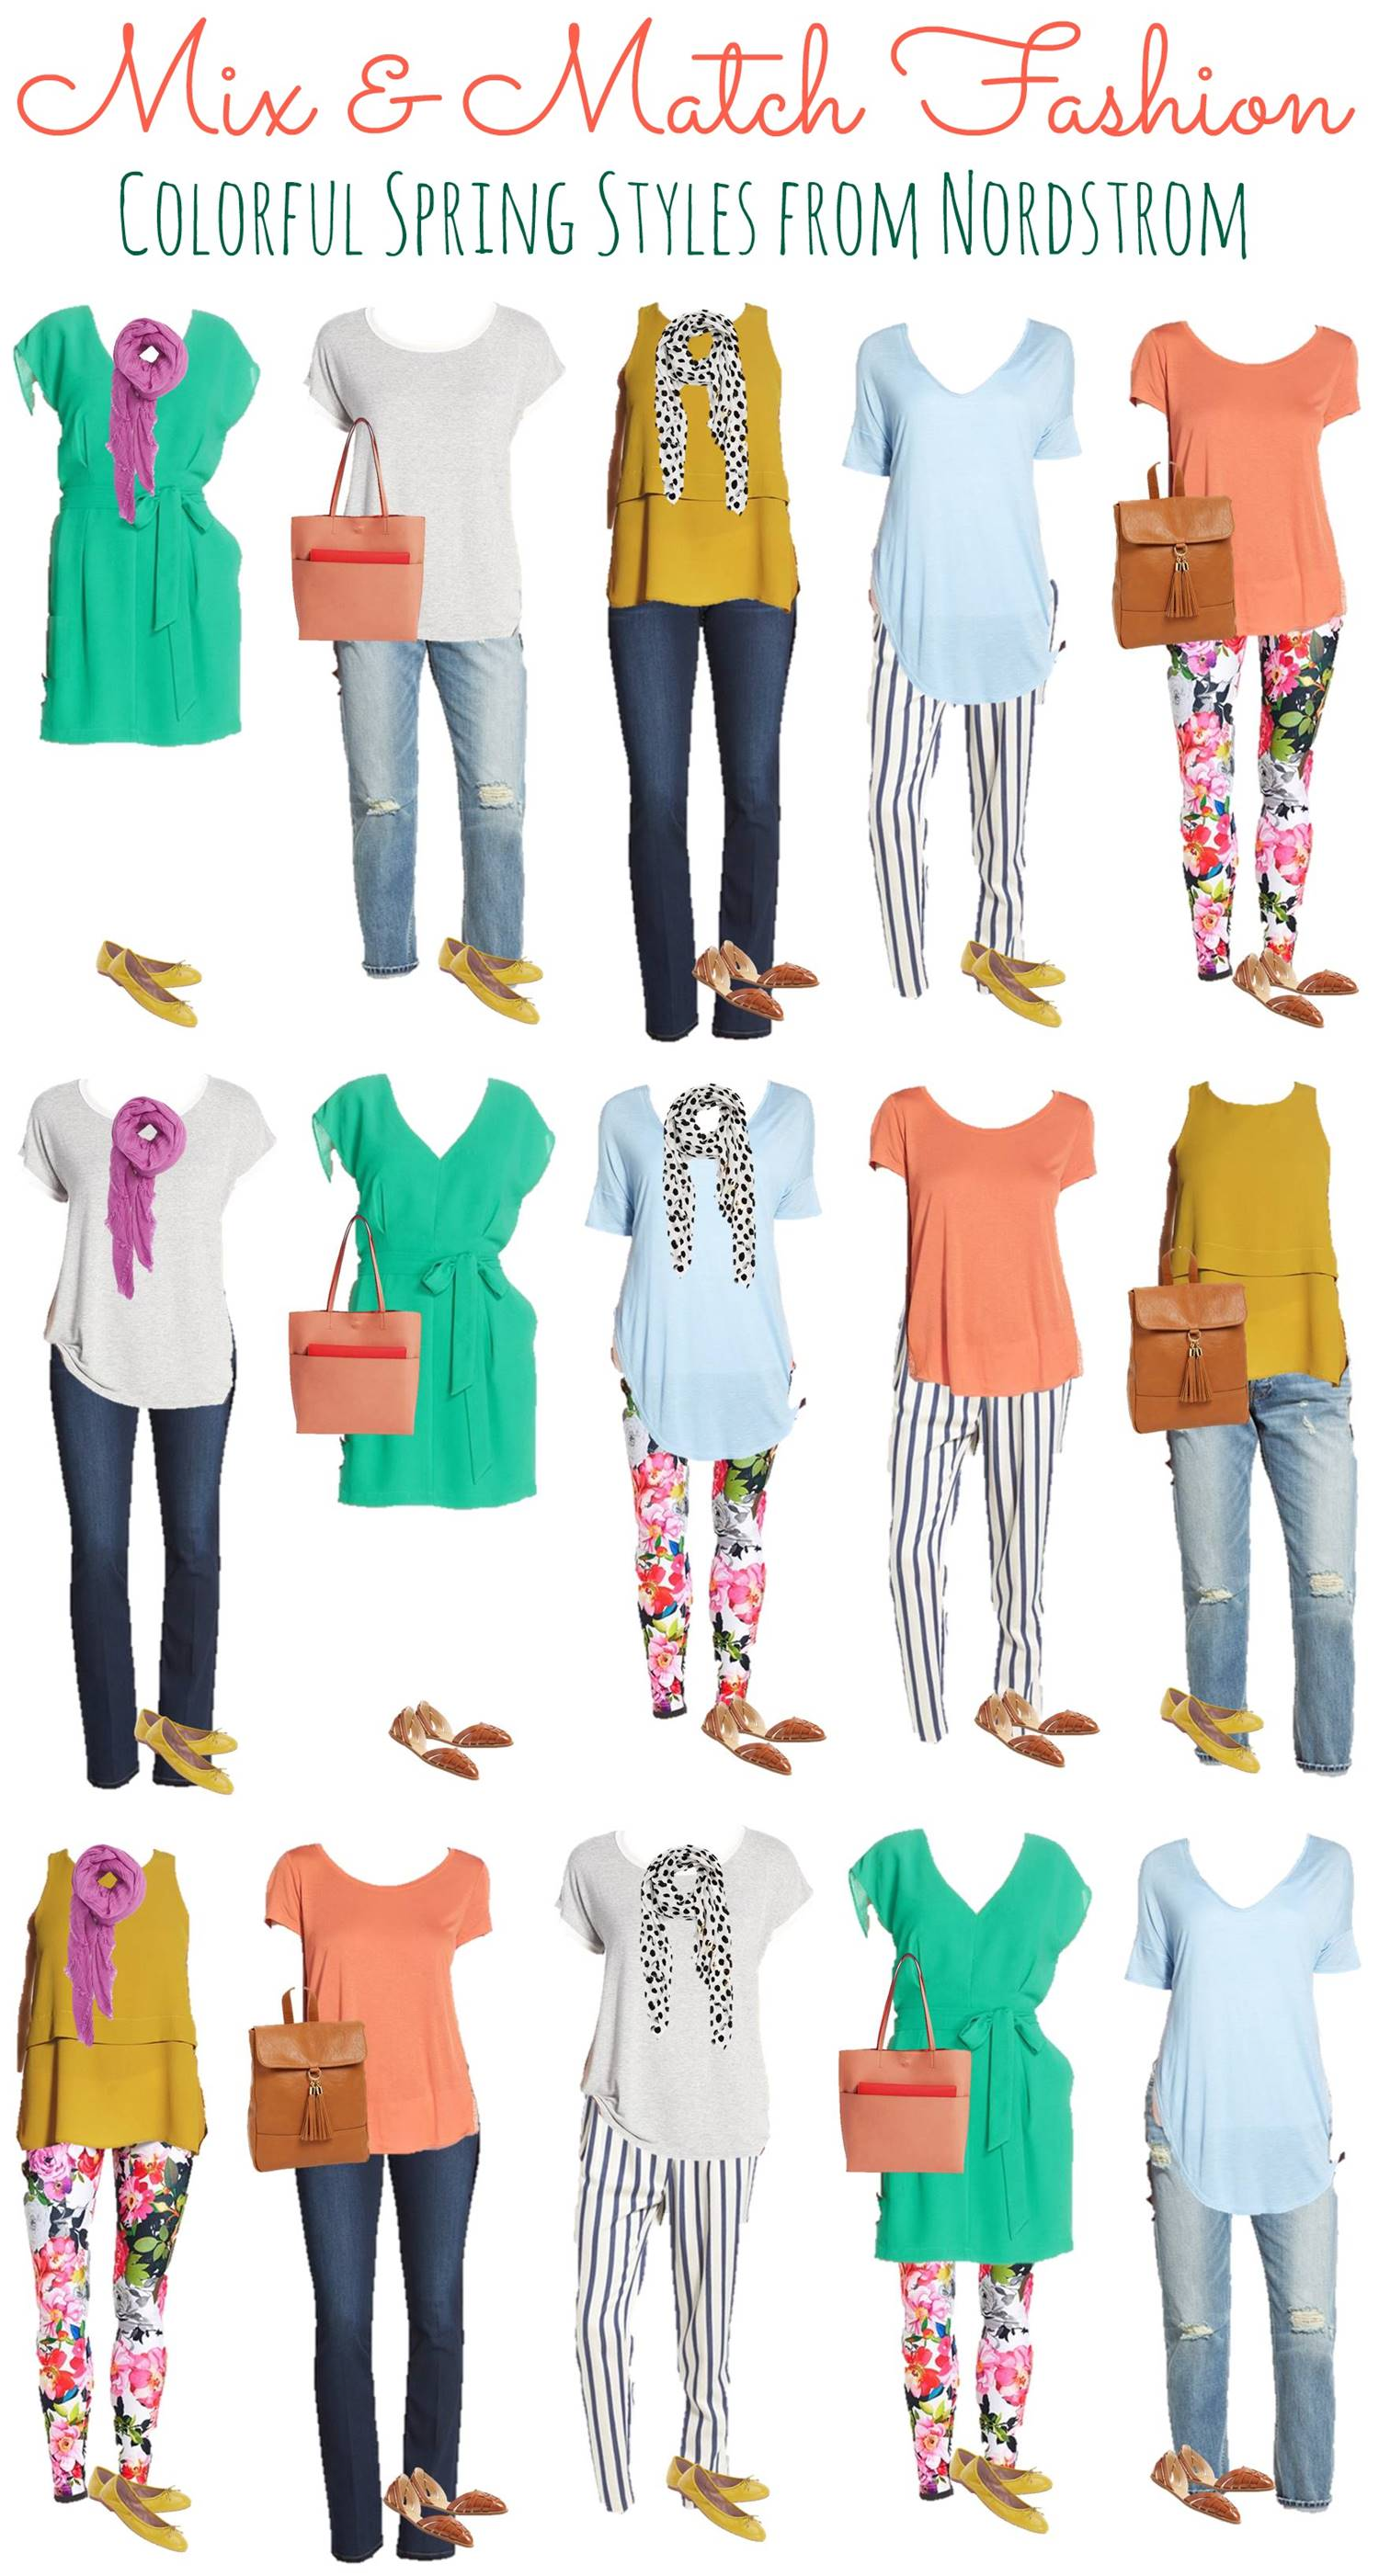 3.9 Mix and Match Fashion - Spring Nordstrom Styles VERTICAL